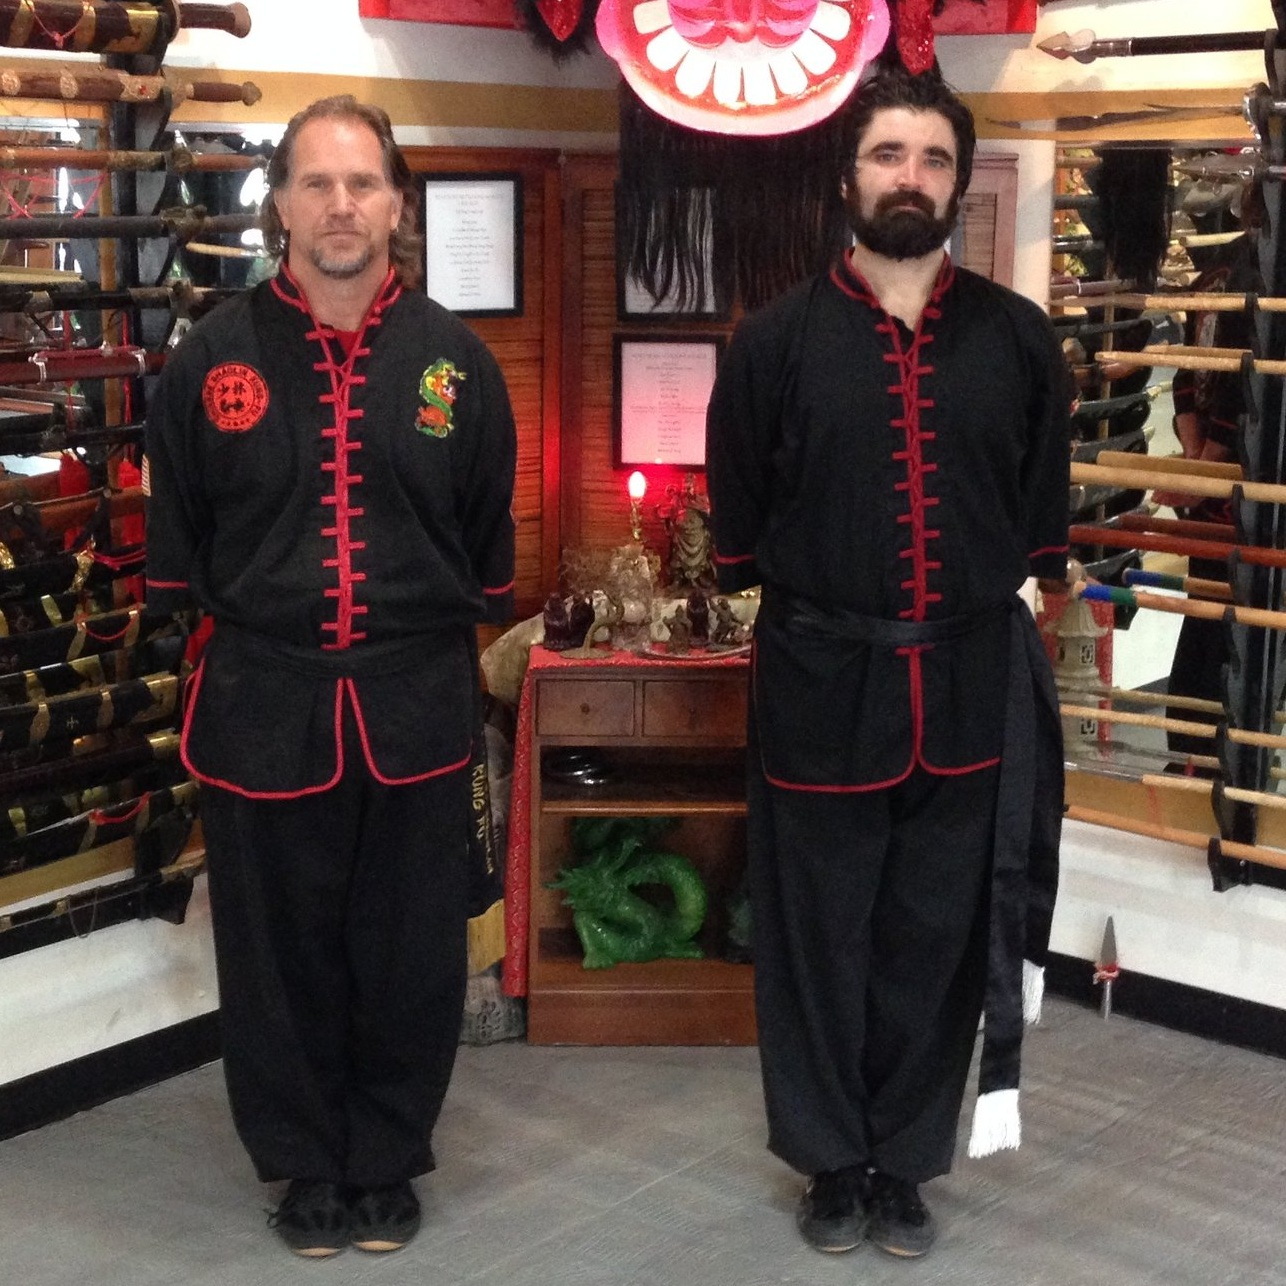 School of Shaolin - Sigung Michael Voss has been preserving the Tai Mantis Kung Fu system by traditional teaching methods for over 30 years at the School of Shoalin. Sifu Tristan Frankus has spent 16 years training under the Sigung Michael Voss' guidance.Coon Rapids MN